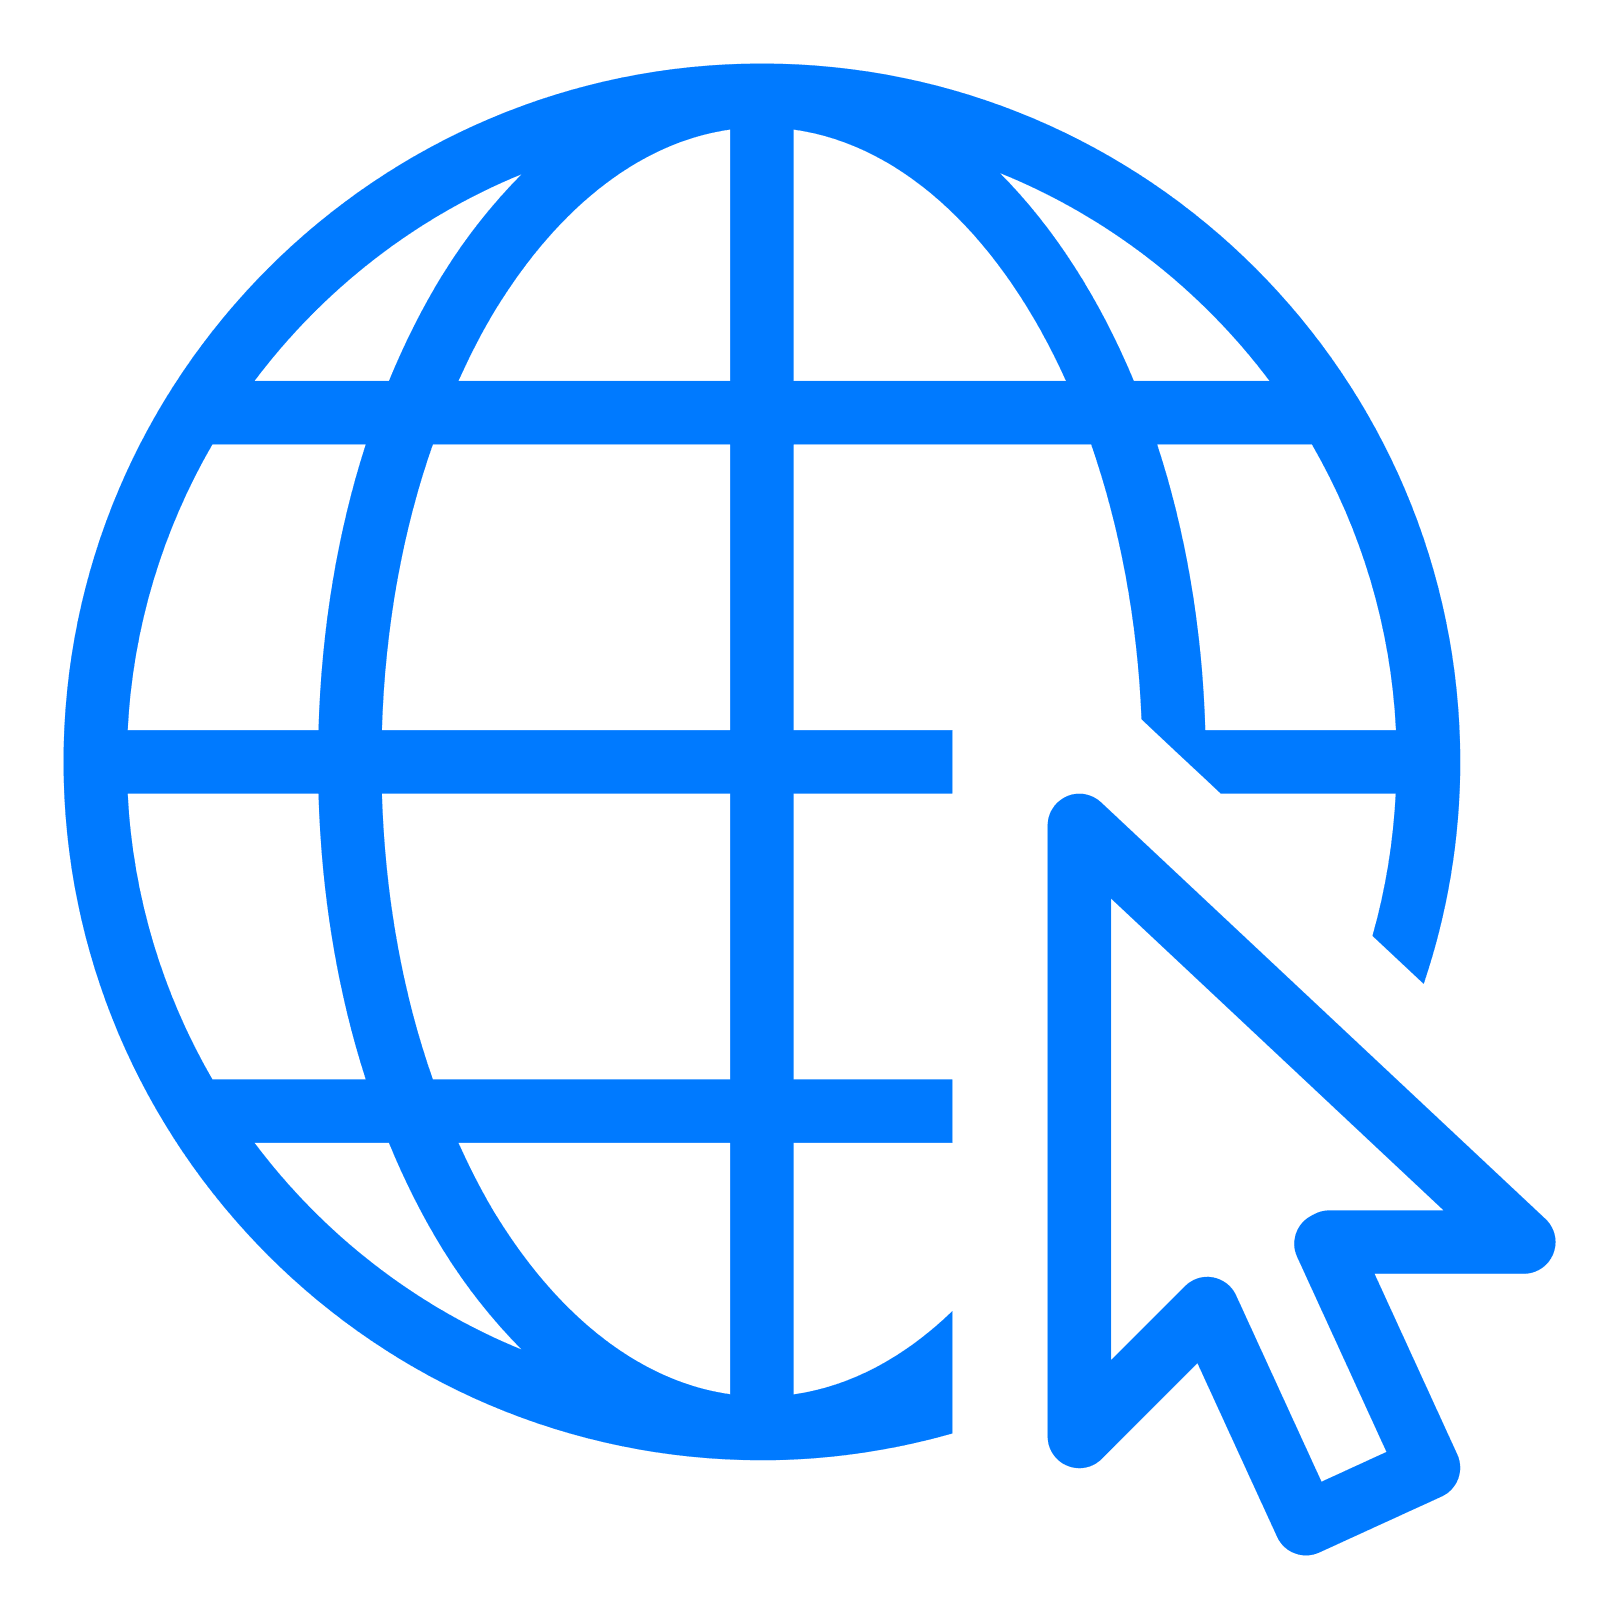 png-internet-internet-icon-1600